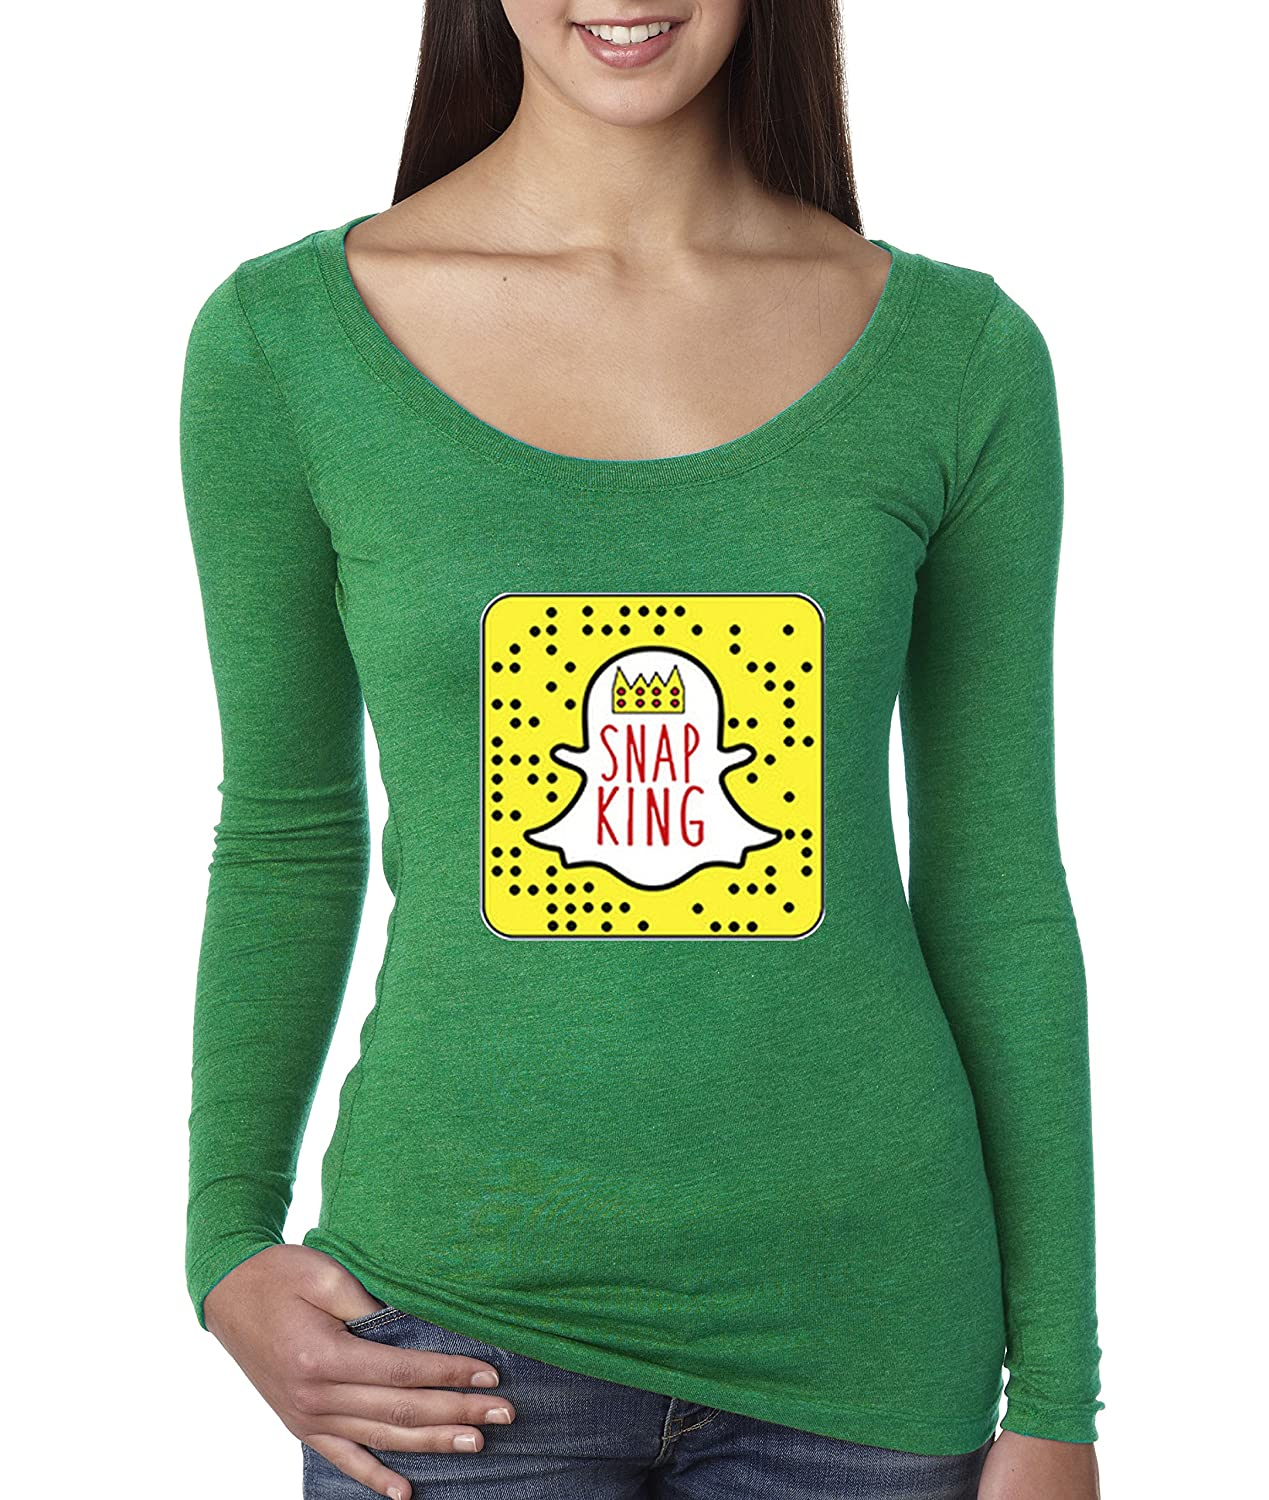 Envy New Way 428  Women's Long Sleeve TShirt Snap King Snapchat App Ghost Parody